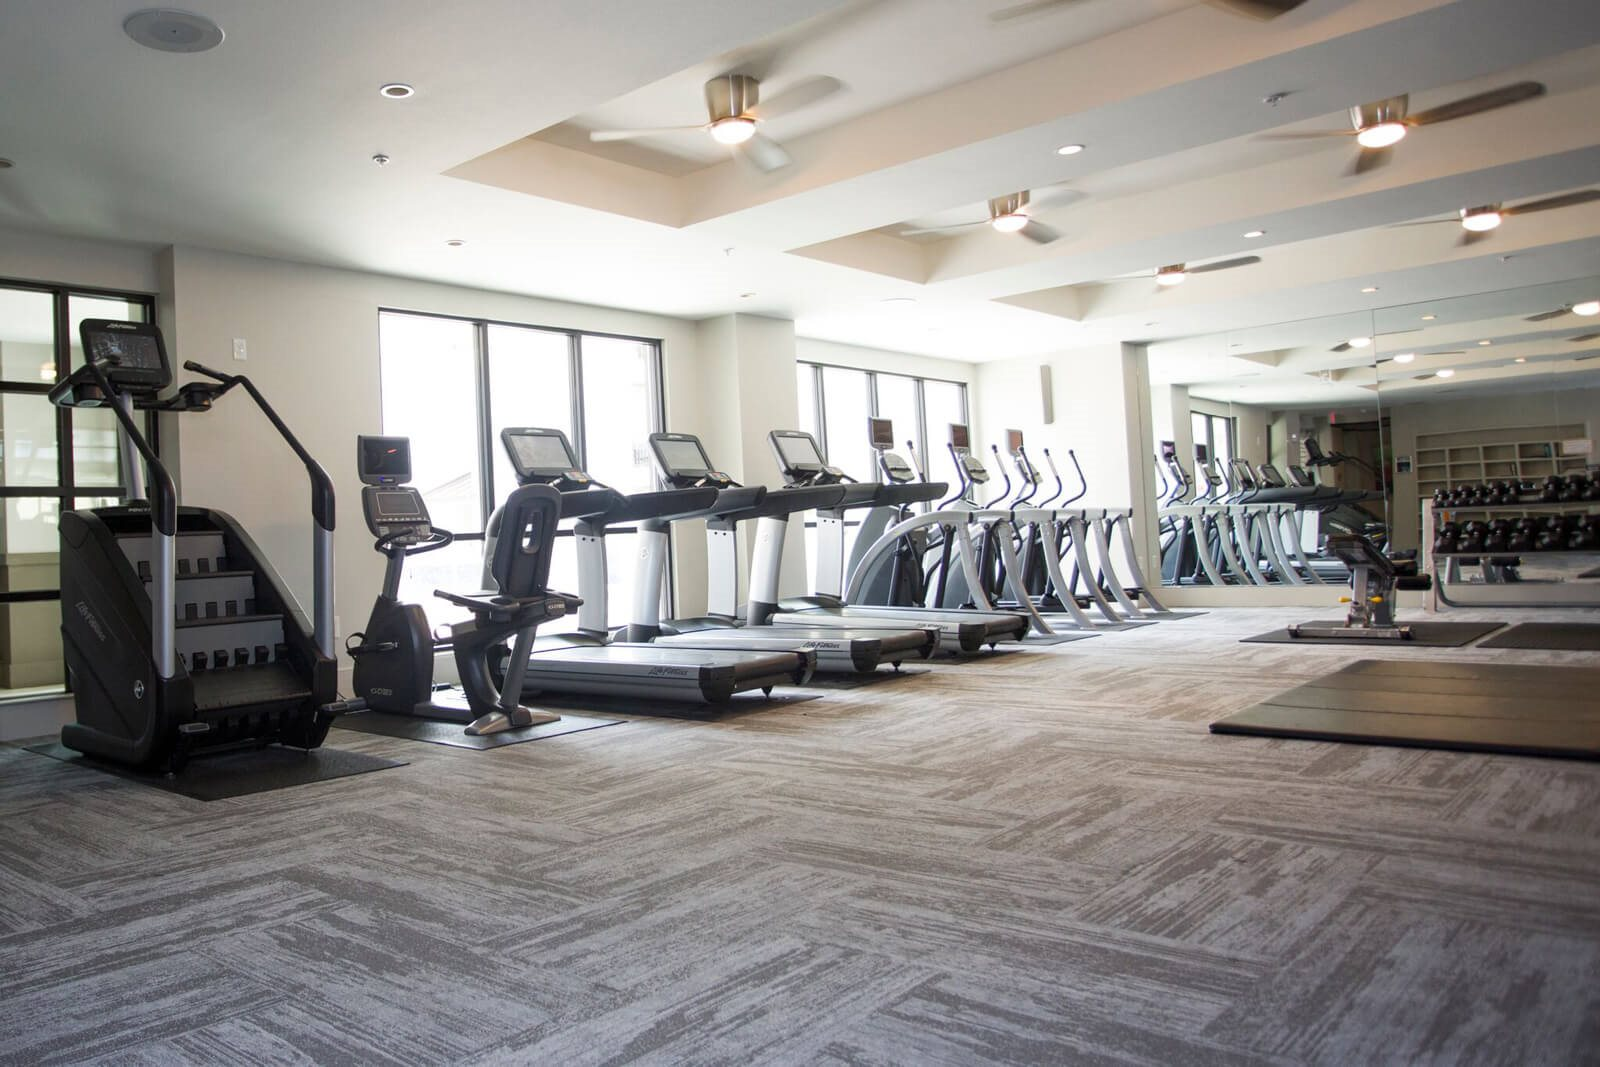 Cardio Equipment in Fitness Center at The Monterey by Windsor, Dallas, TX